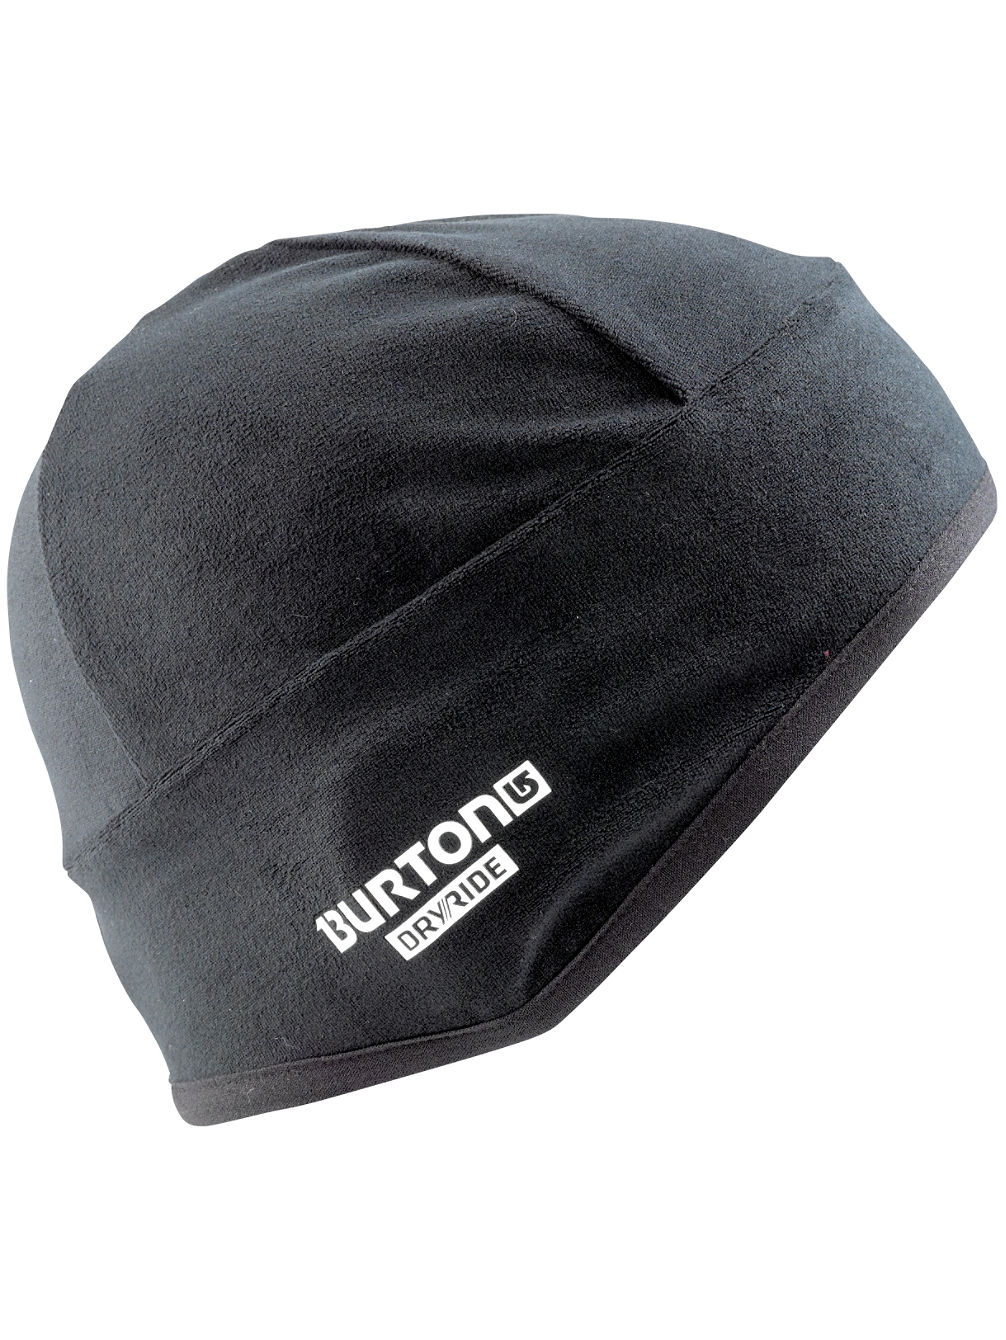 expedition-liner-beanie